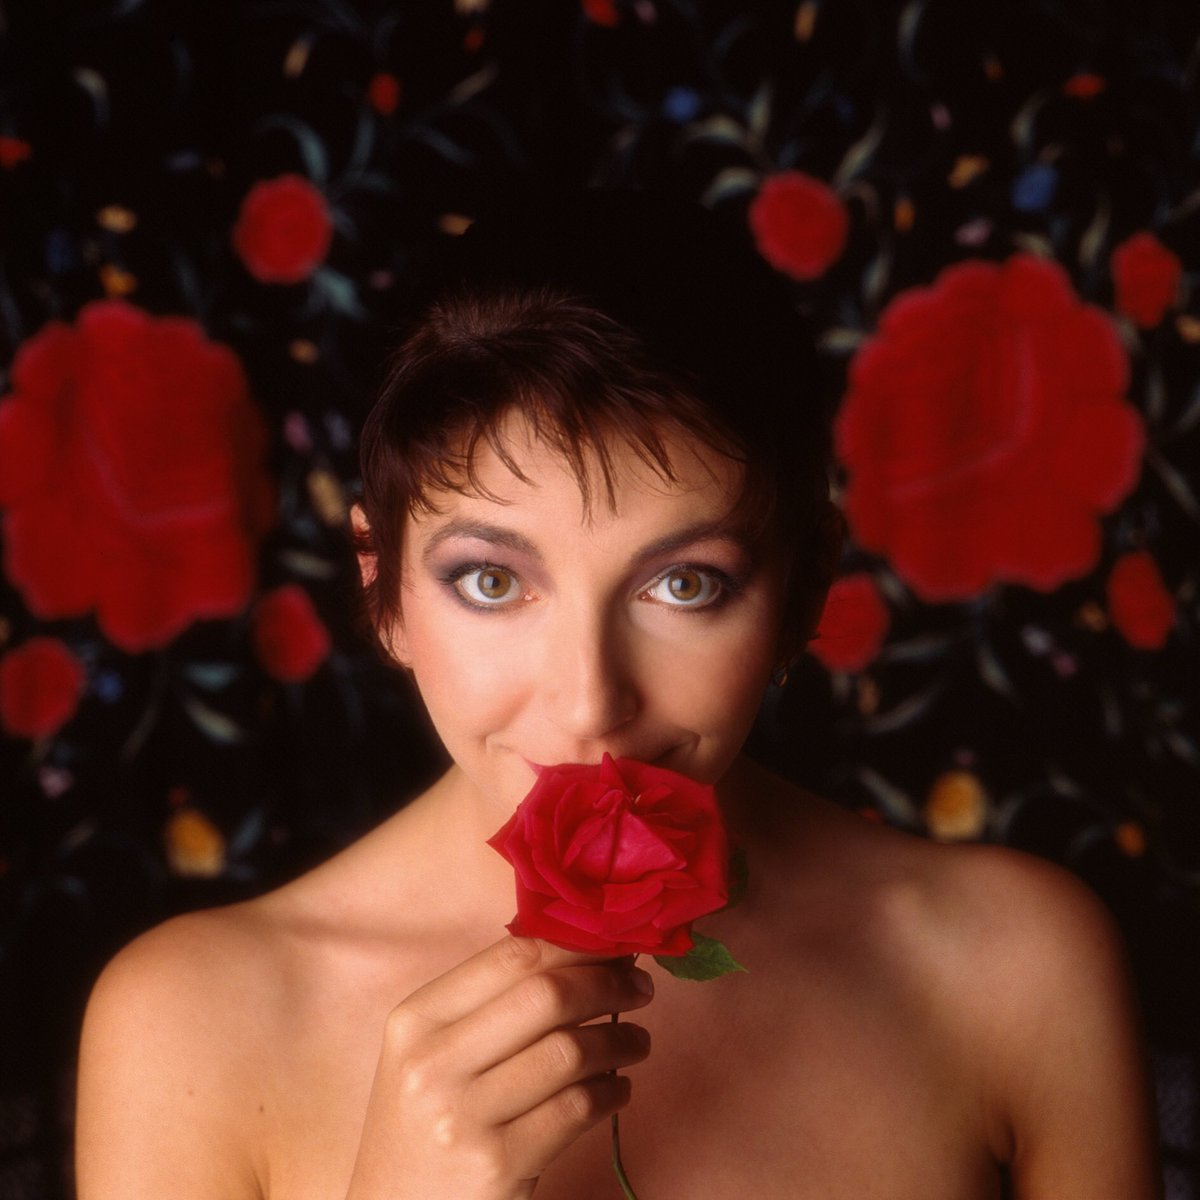 katebushnews photo